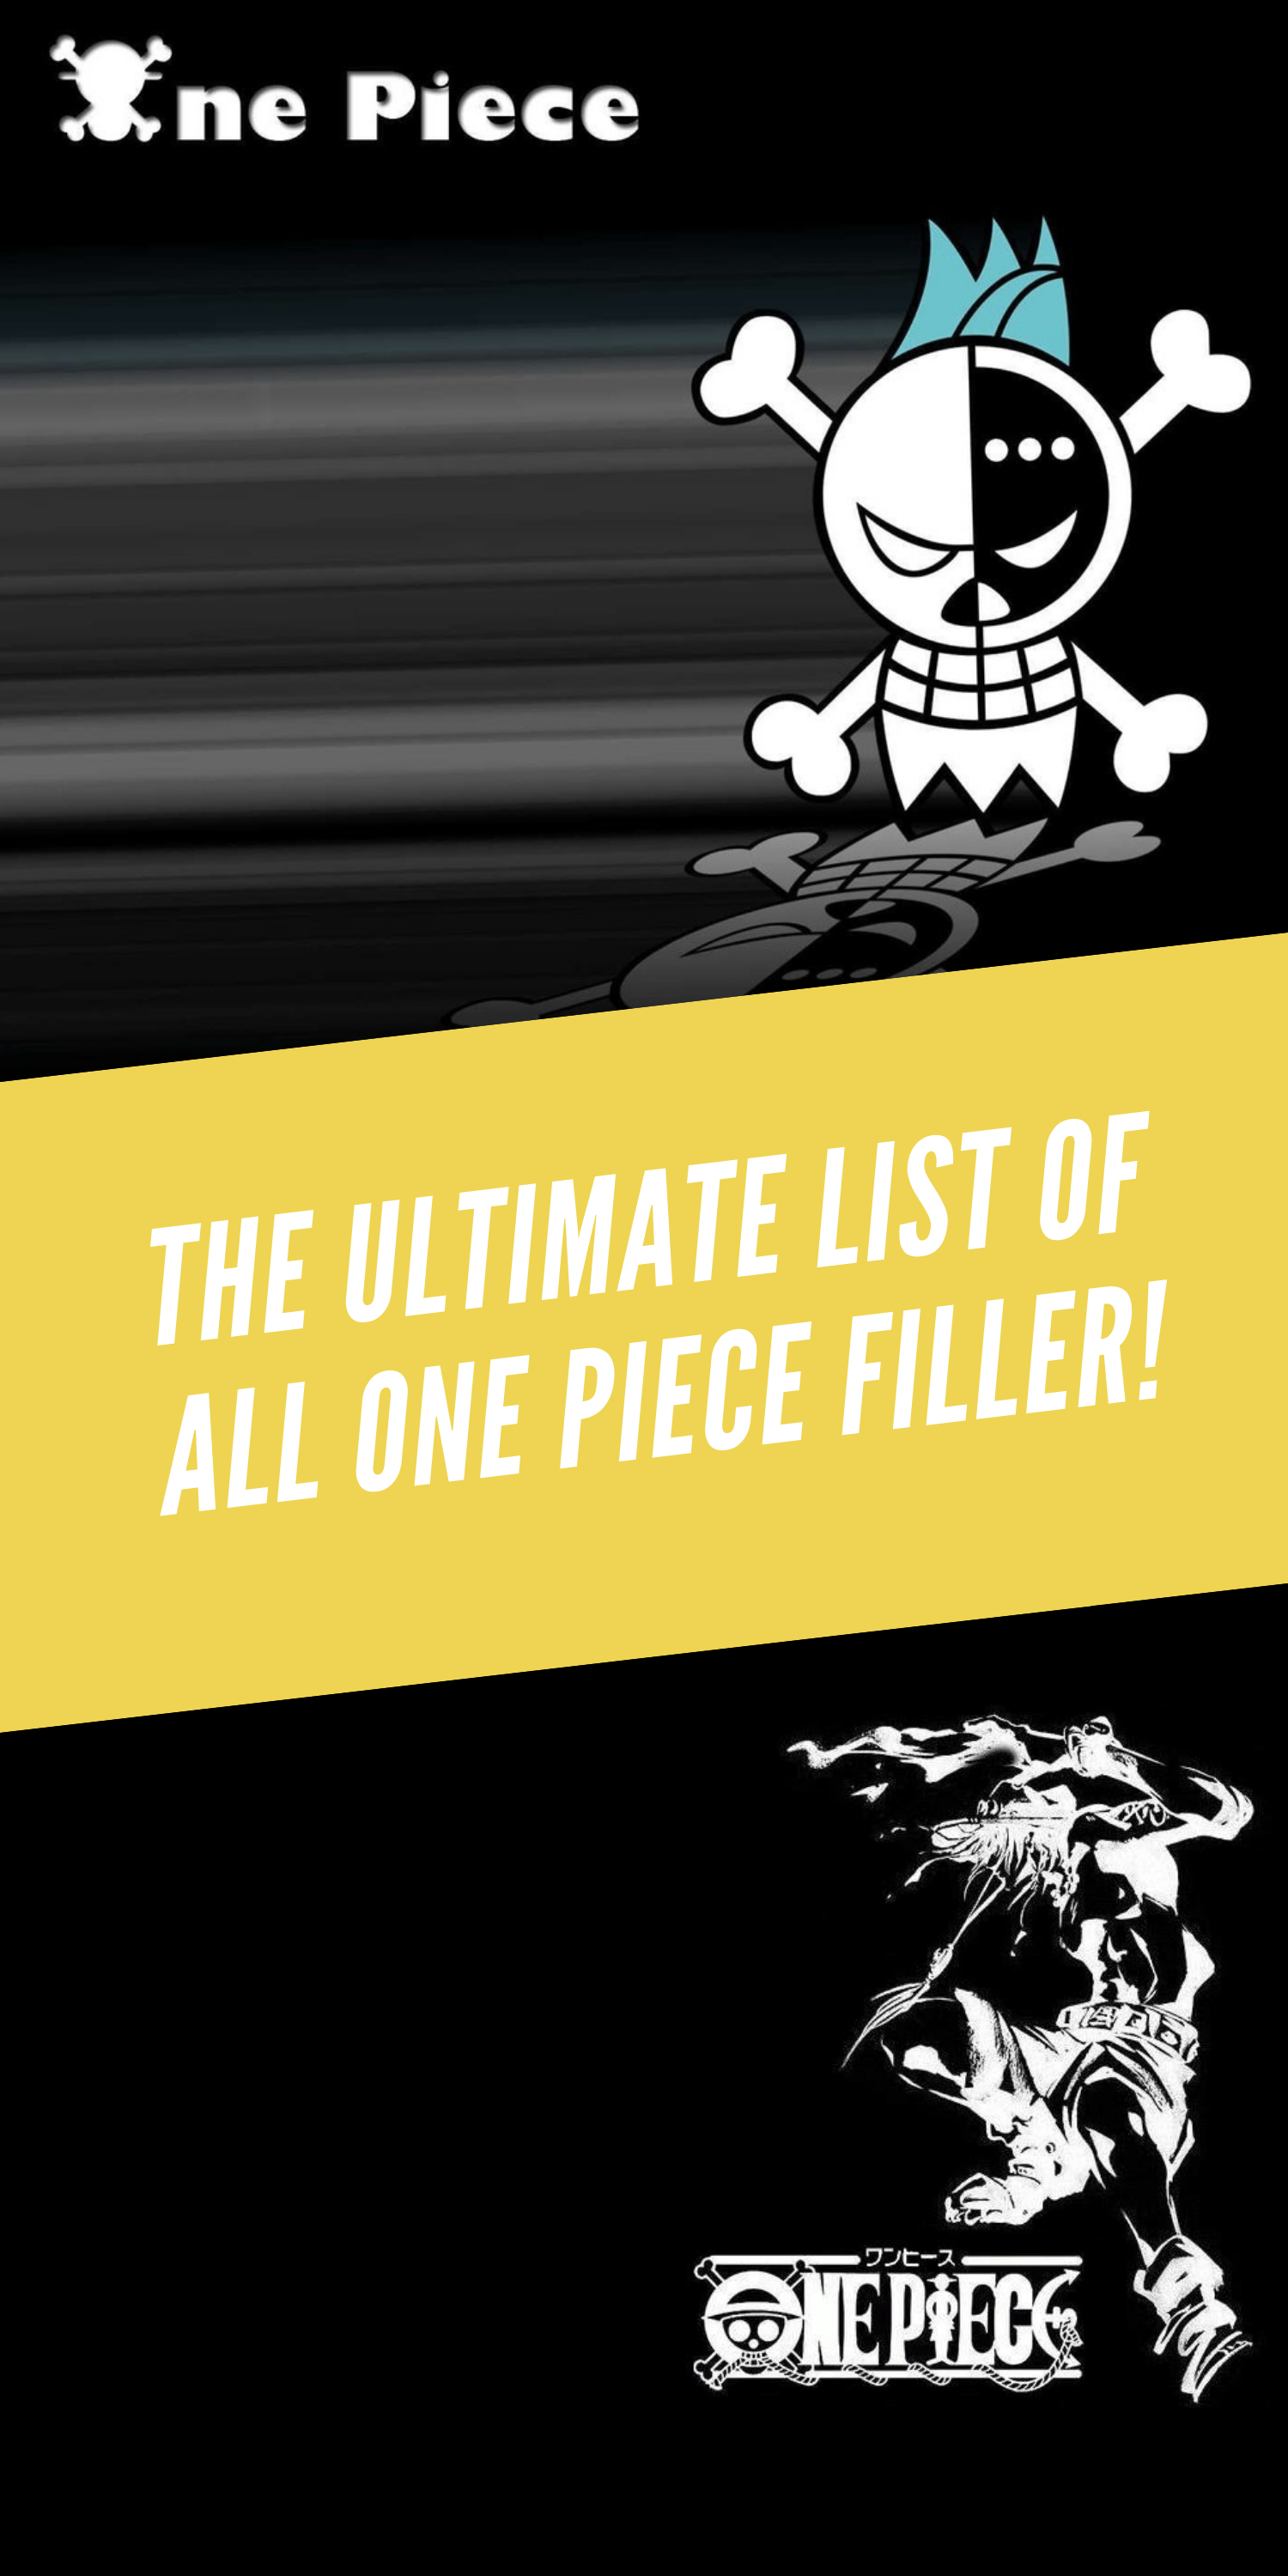 Ultimate One Piece Filler List Ghibli movies, Anime